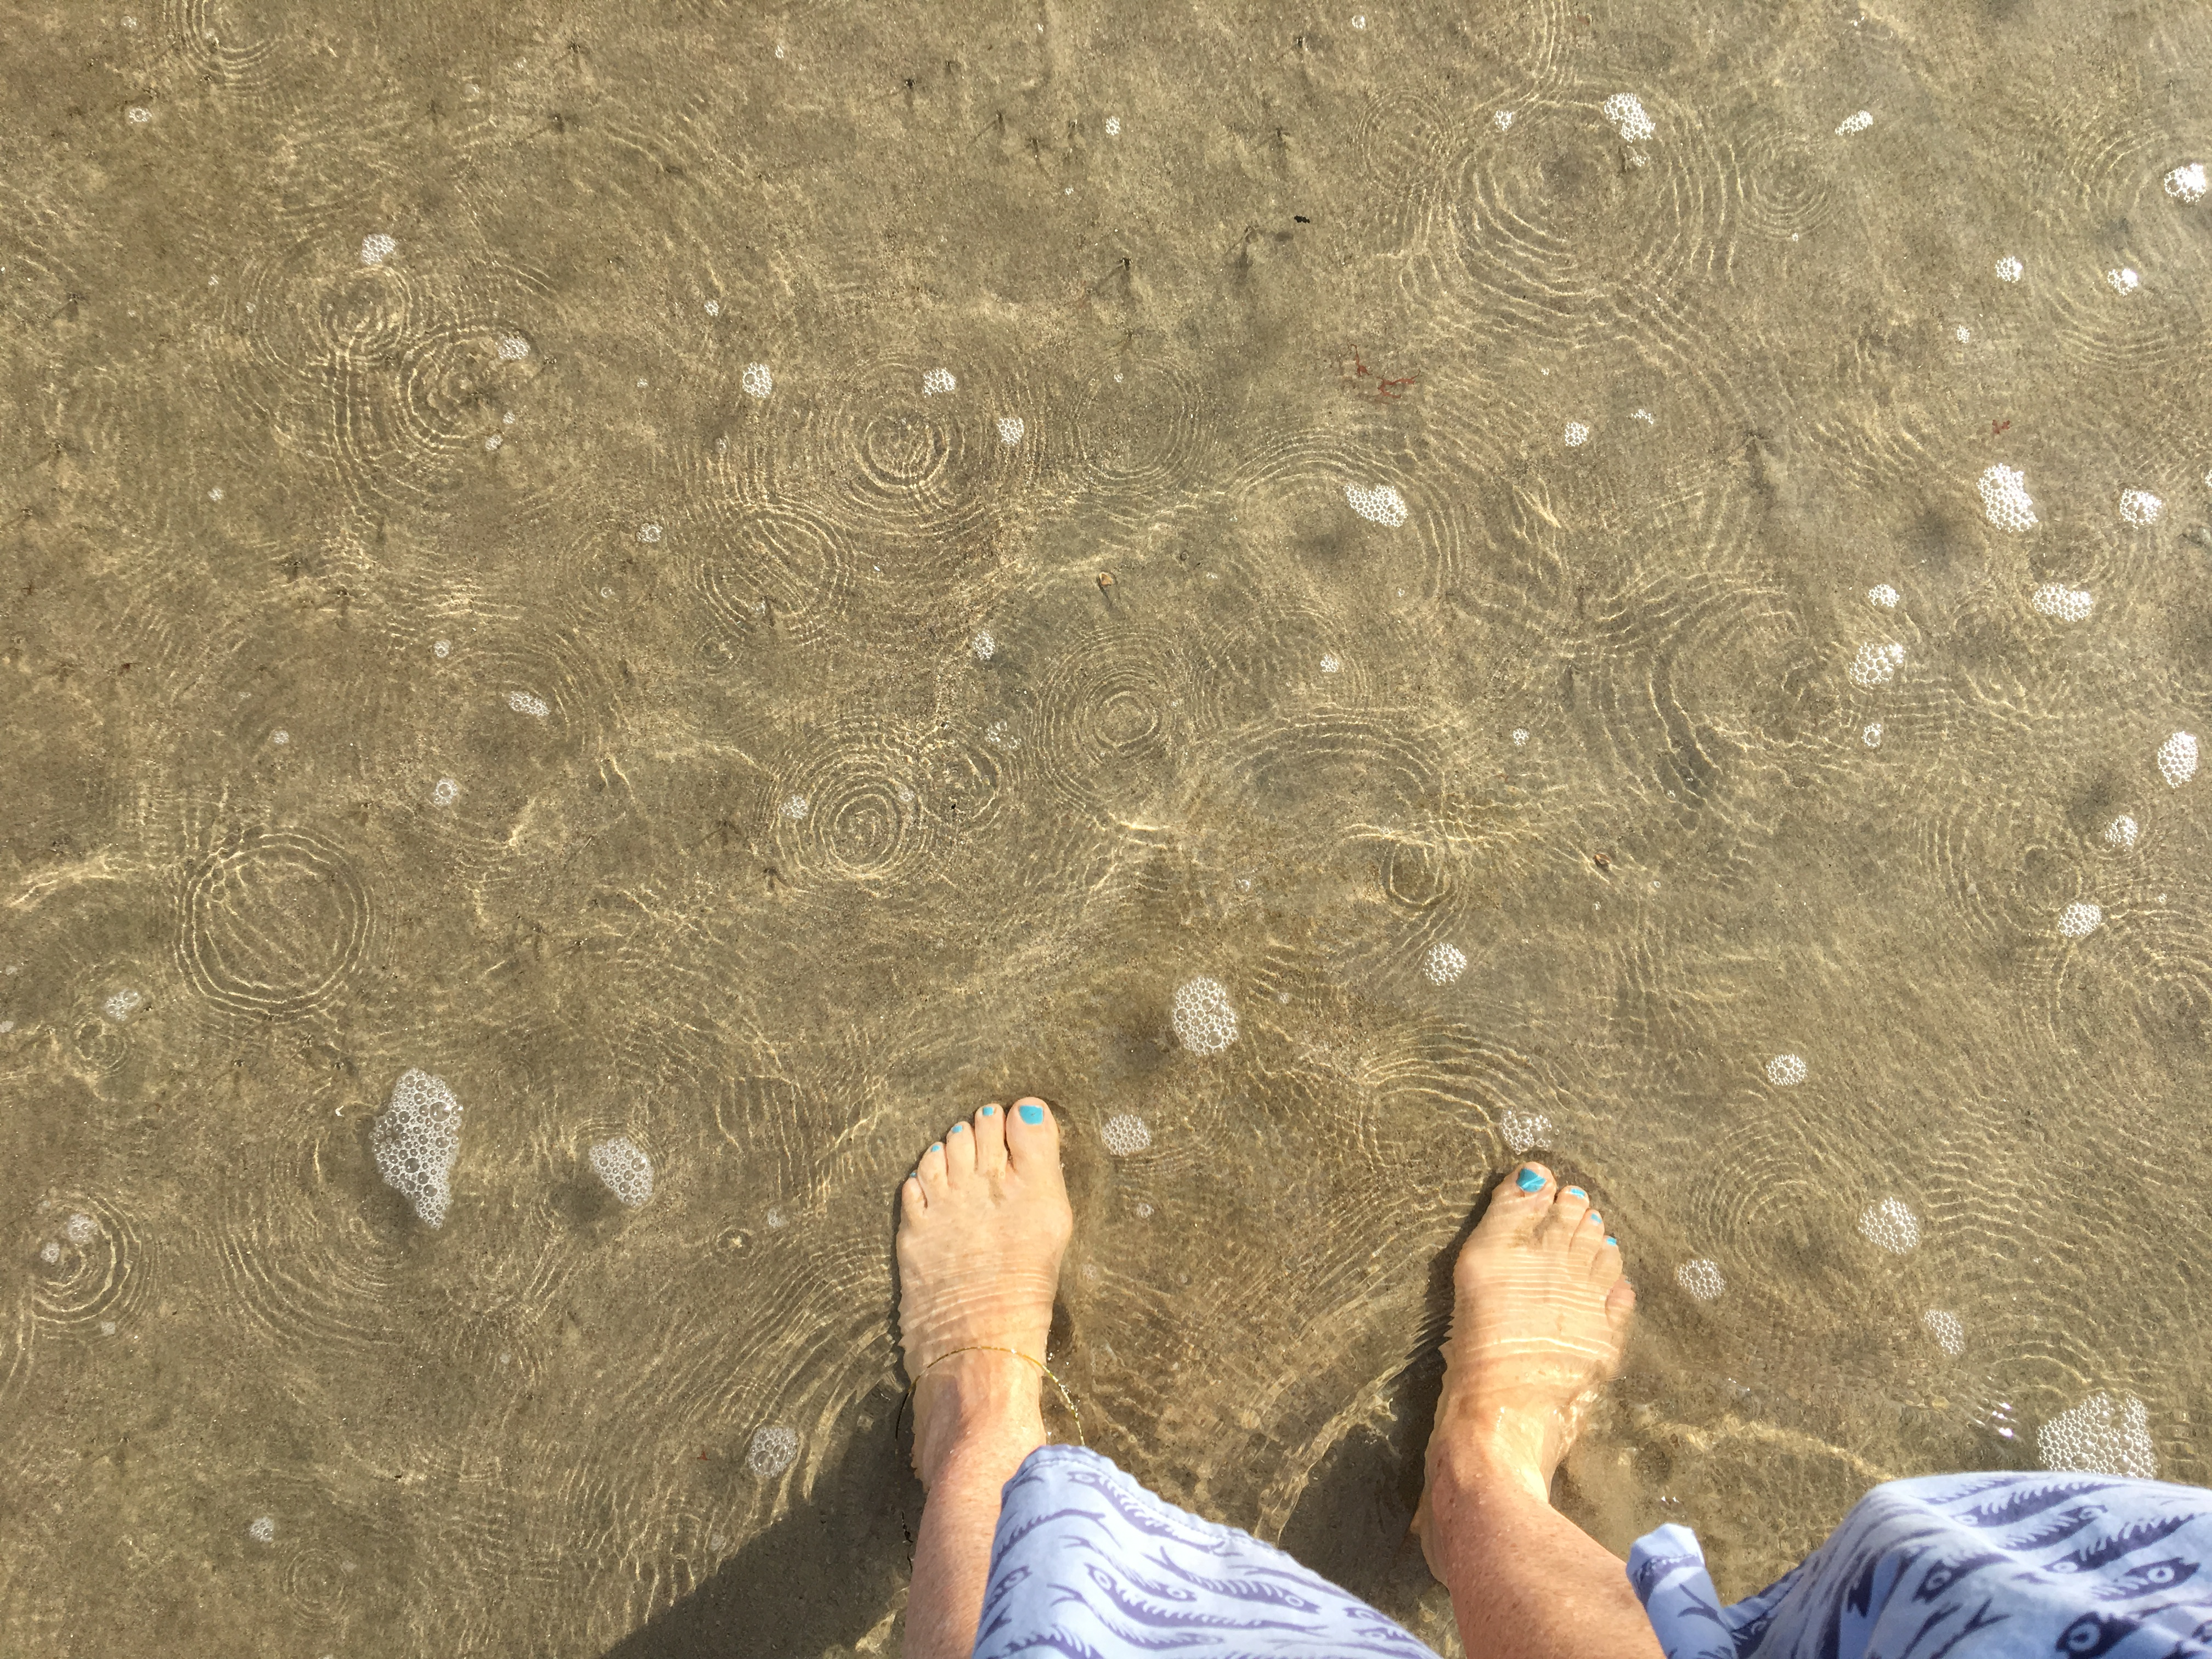 feet in the sand on Santa Monica beach